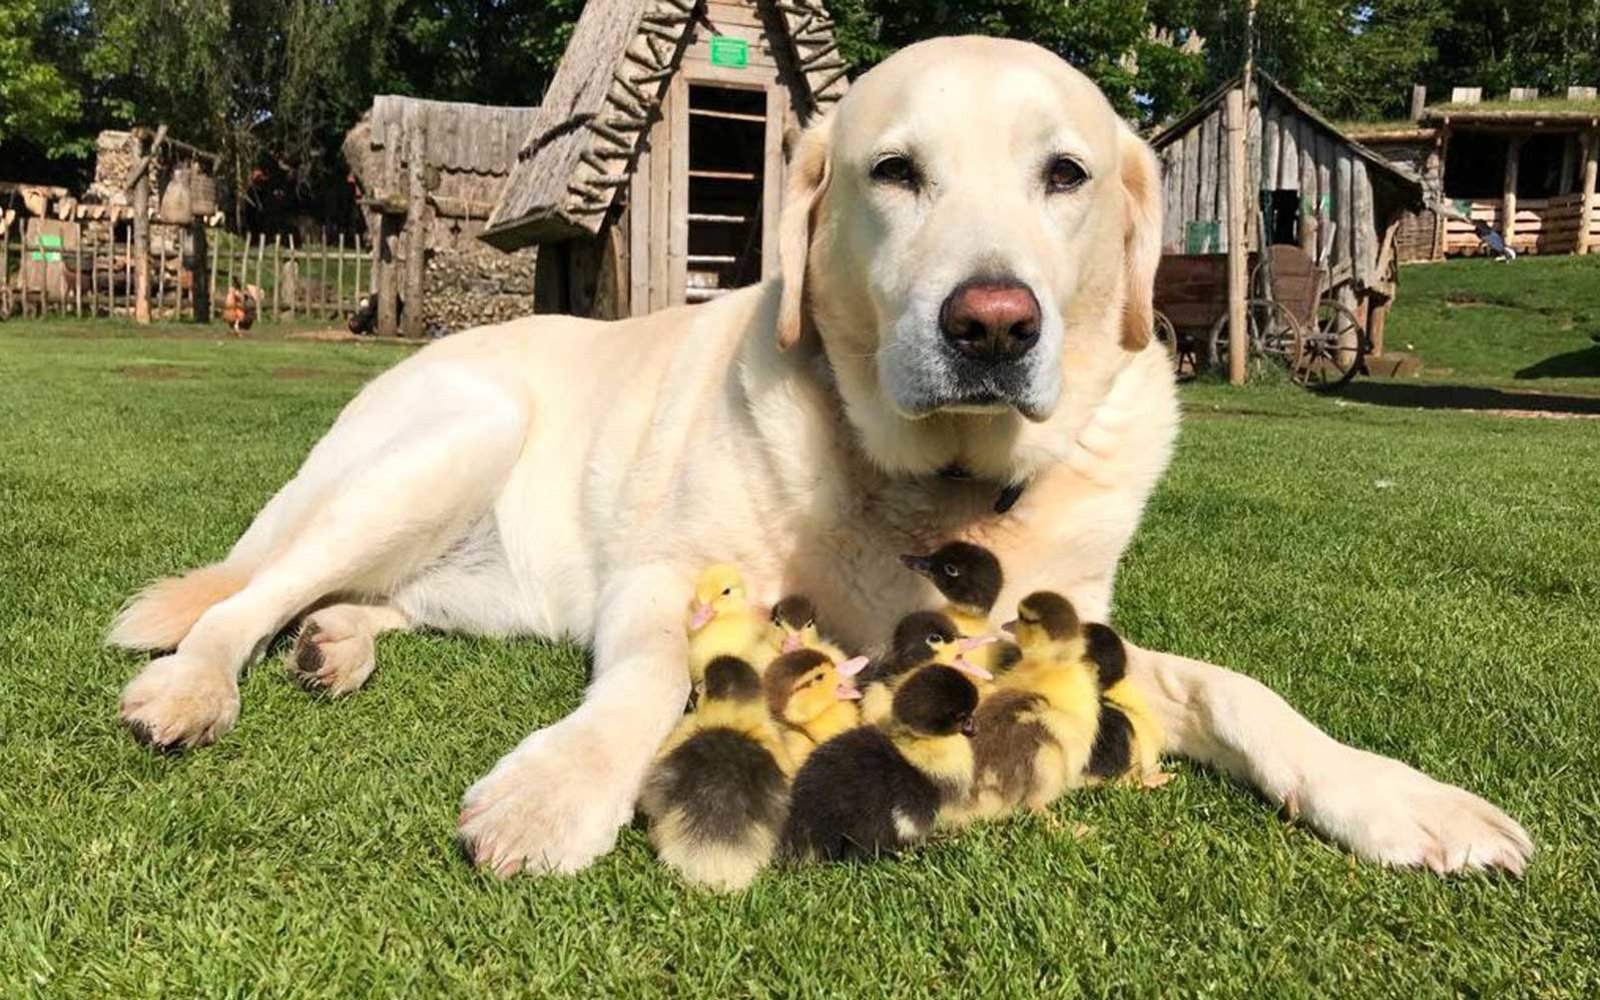 This Labrador Adopted These 9 Ducklings And Now They All